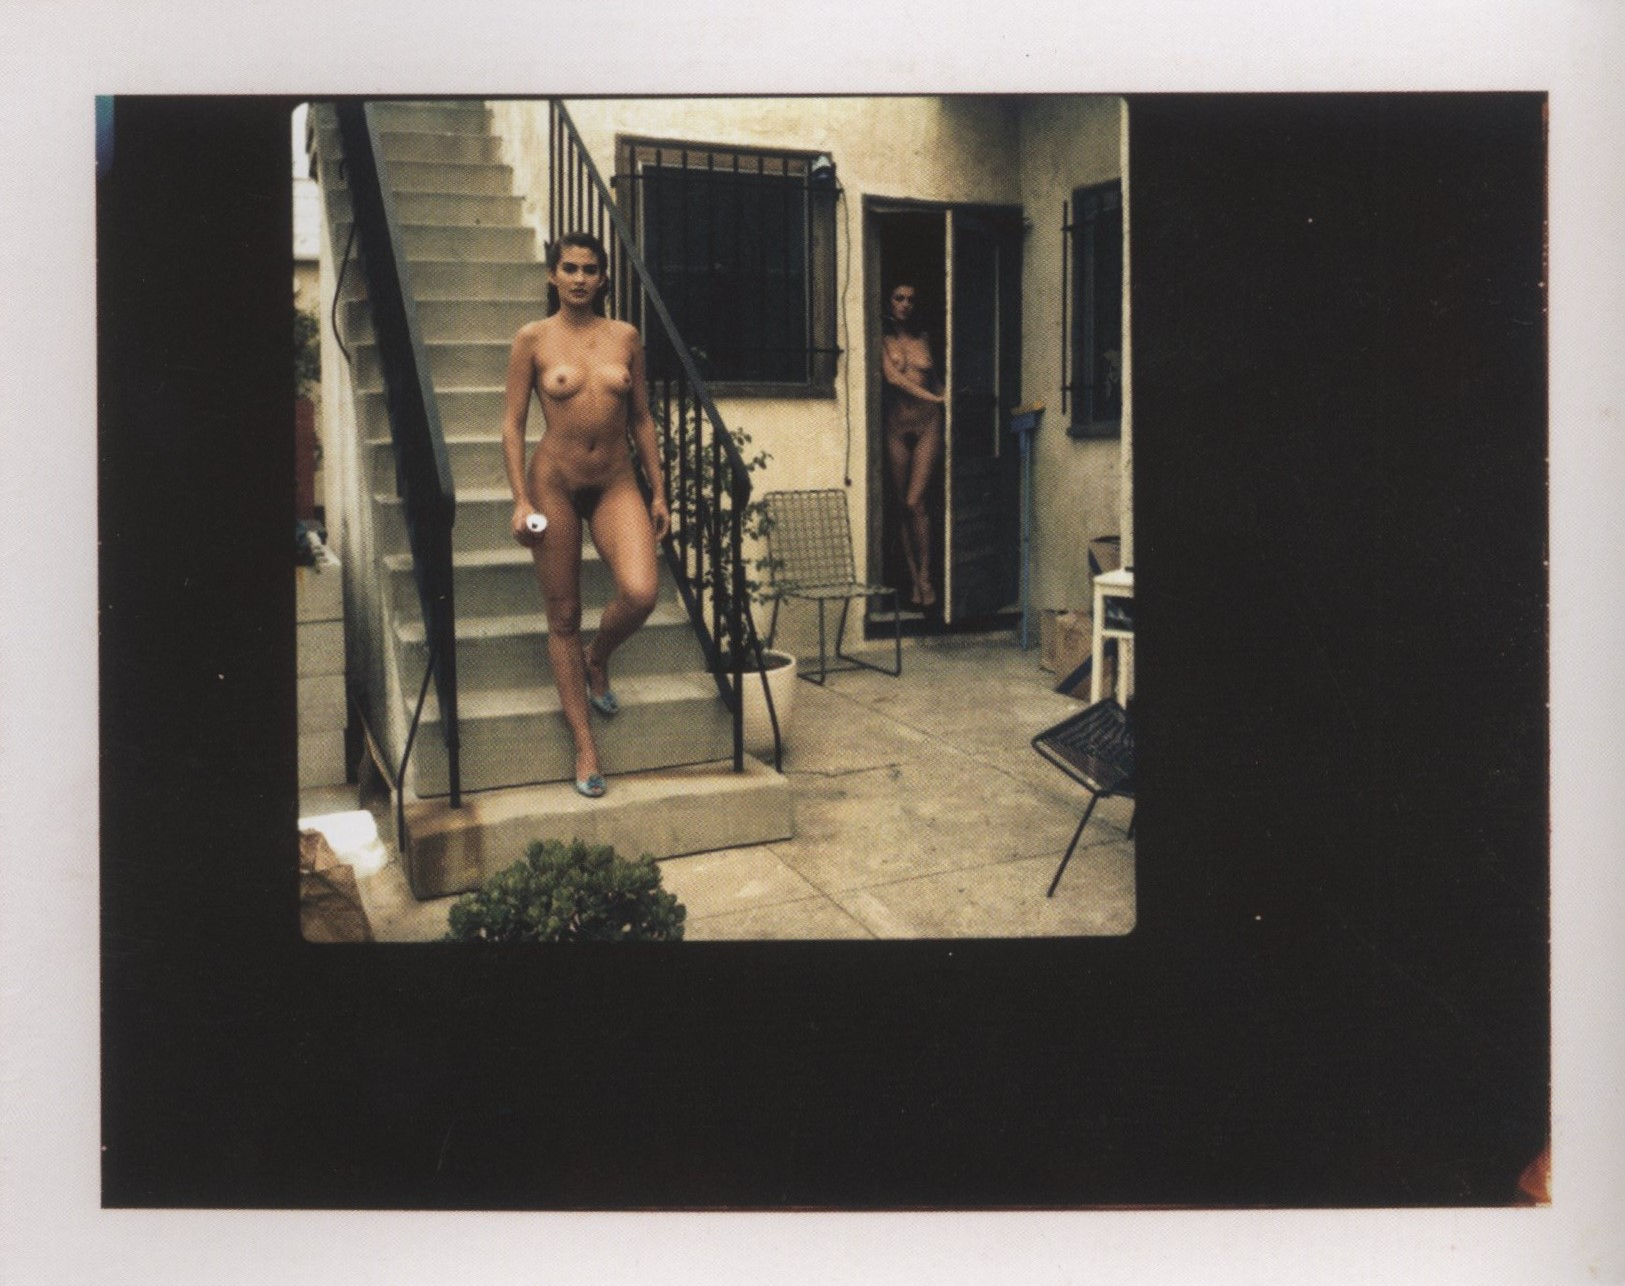 PLAYBOY LOS ANGELES 1986 POLAROID HELMUT NEWTON